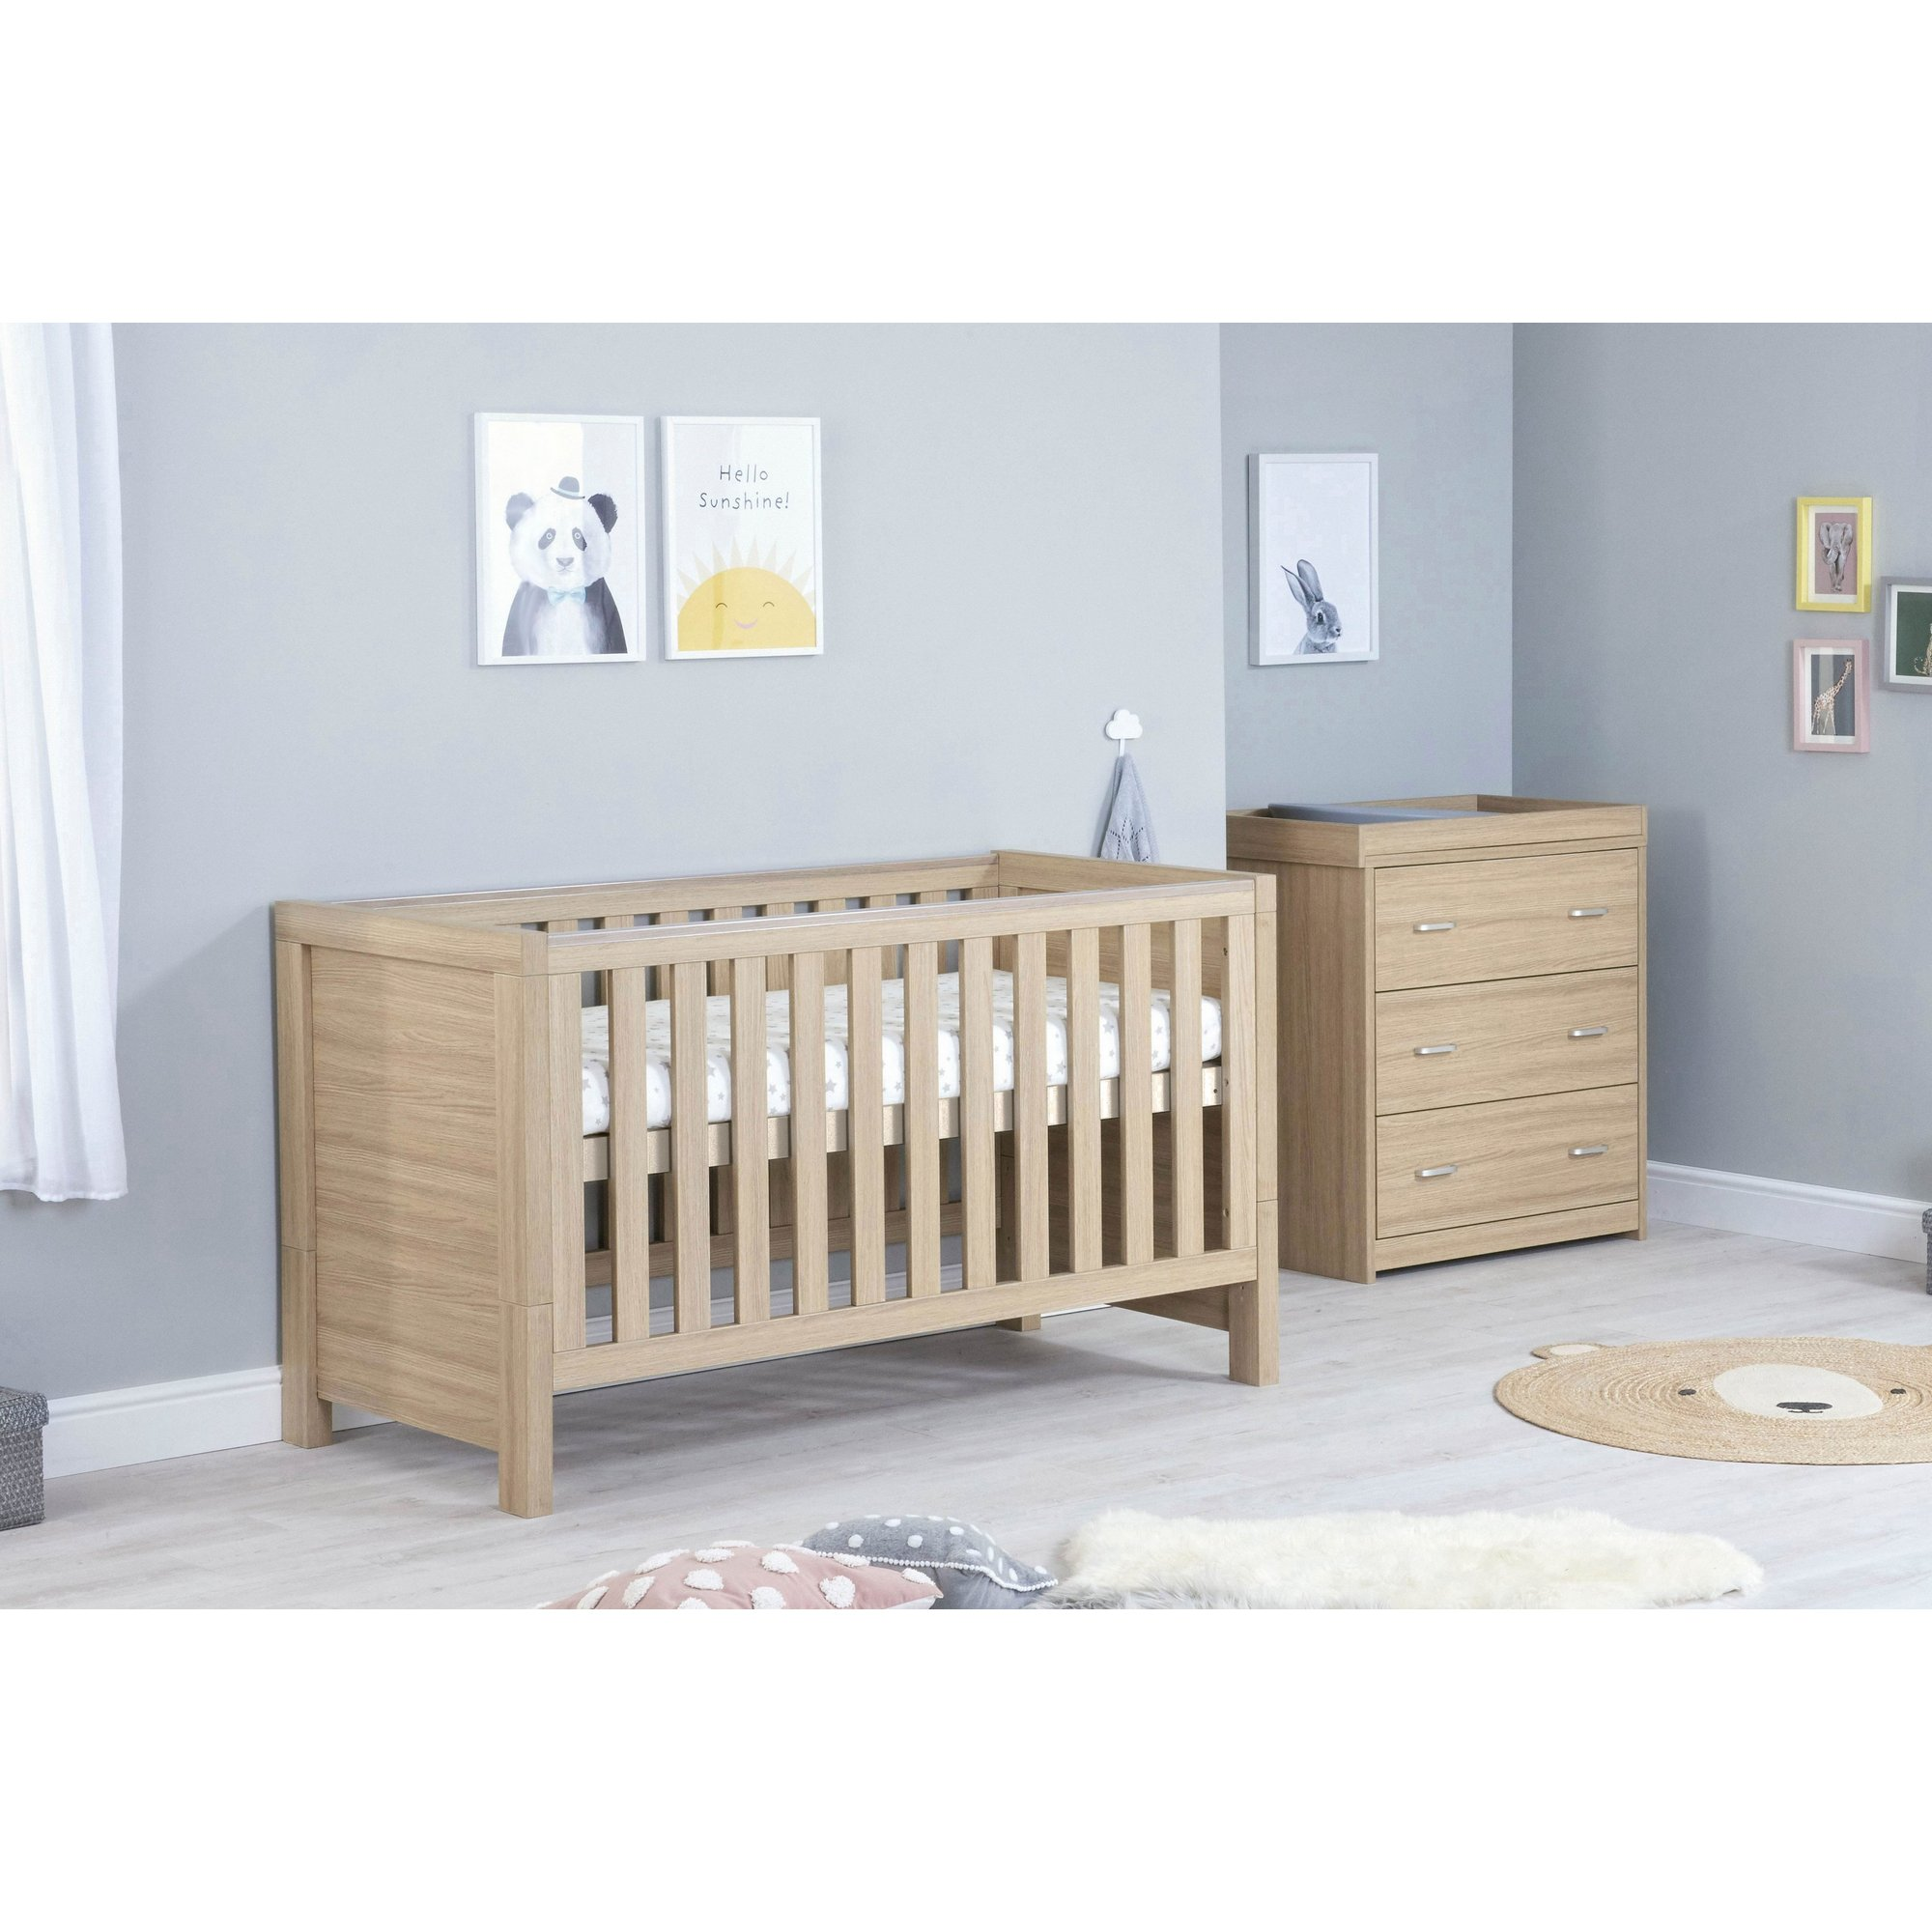 Image of 2 Piece Coat Bed and Chest Luno Oak Room Set